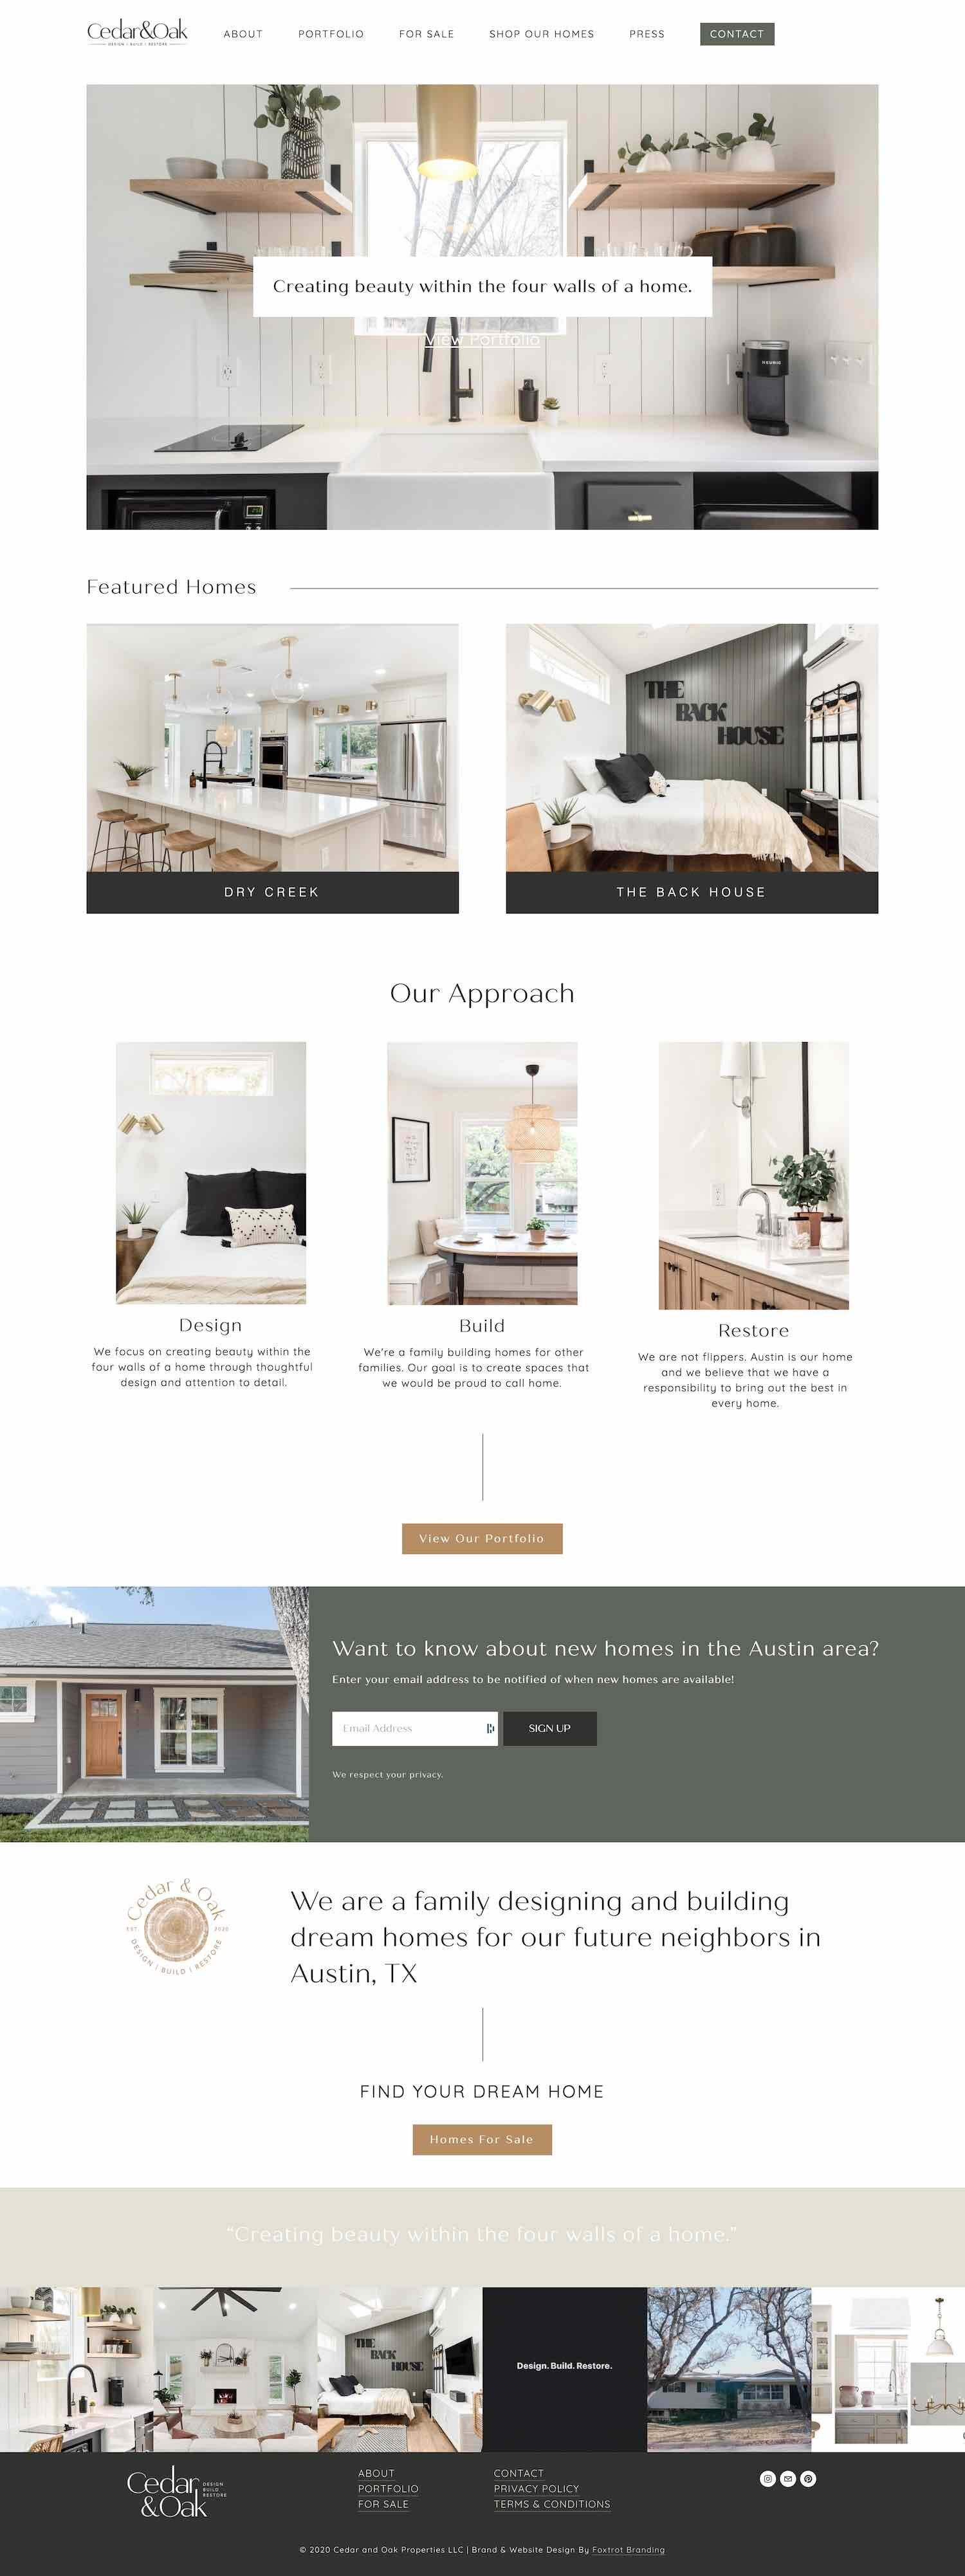 20 Best Example Squarespace Websites Small Business Edition Paige Brunton Squarespace Templates Squarespace Designer Courses